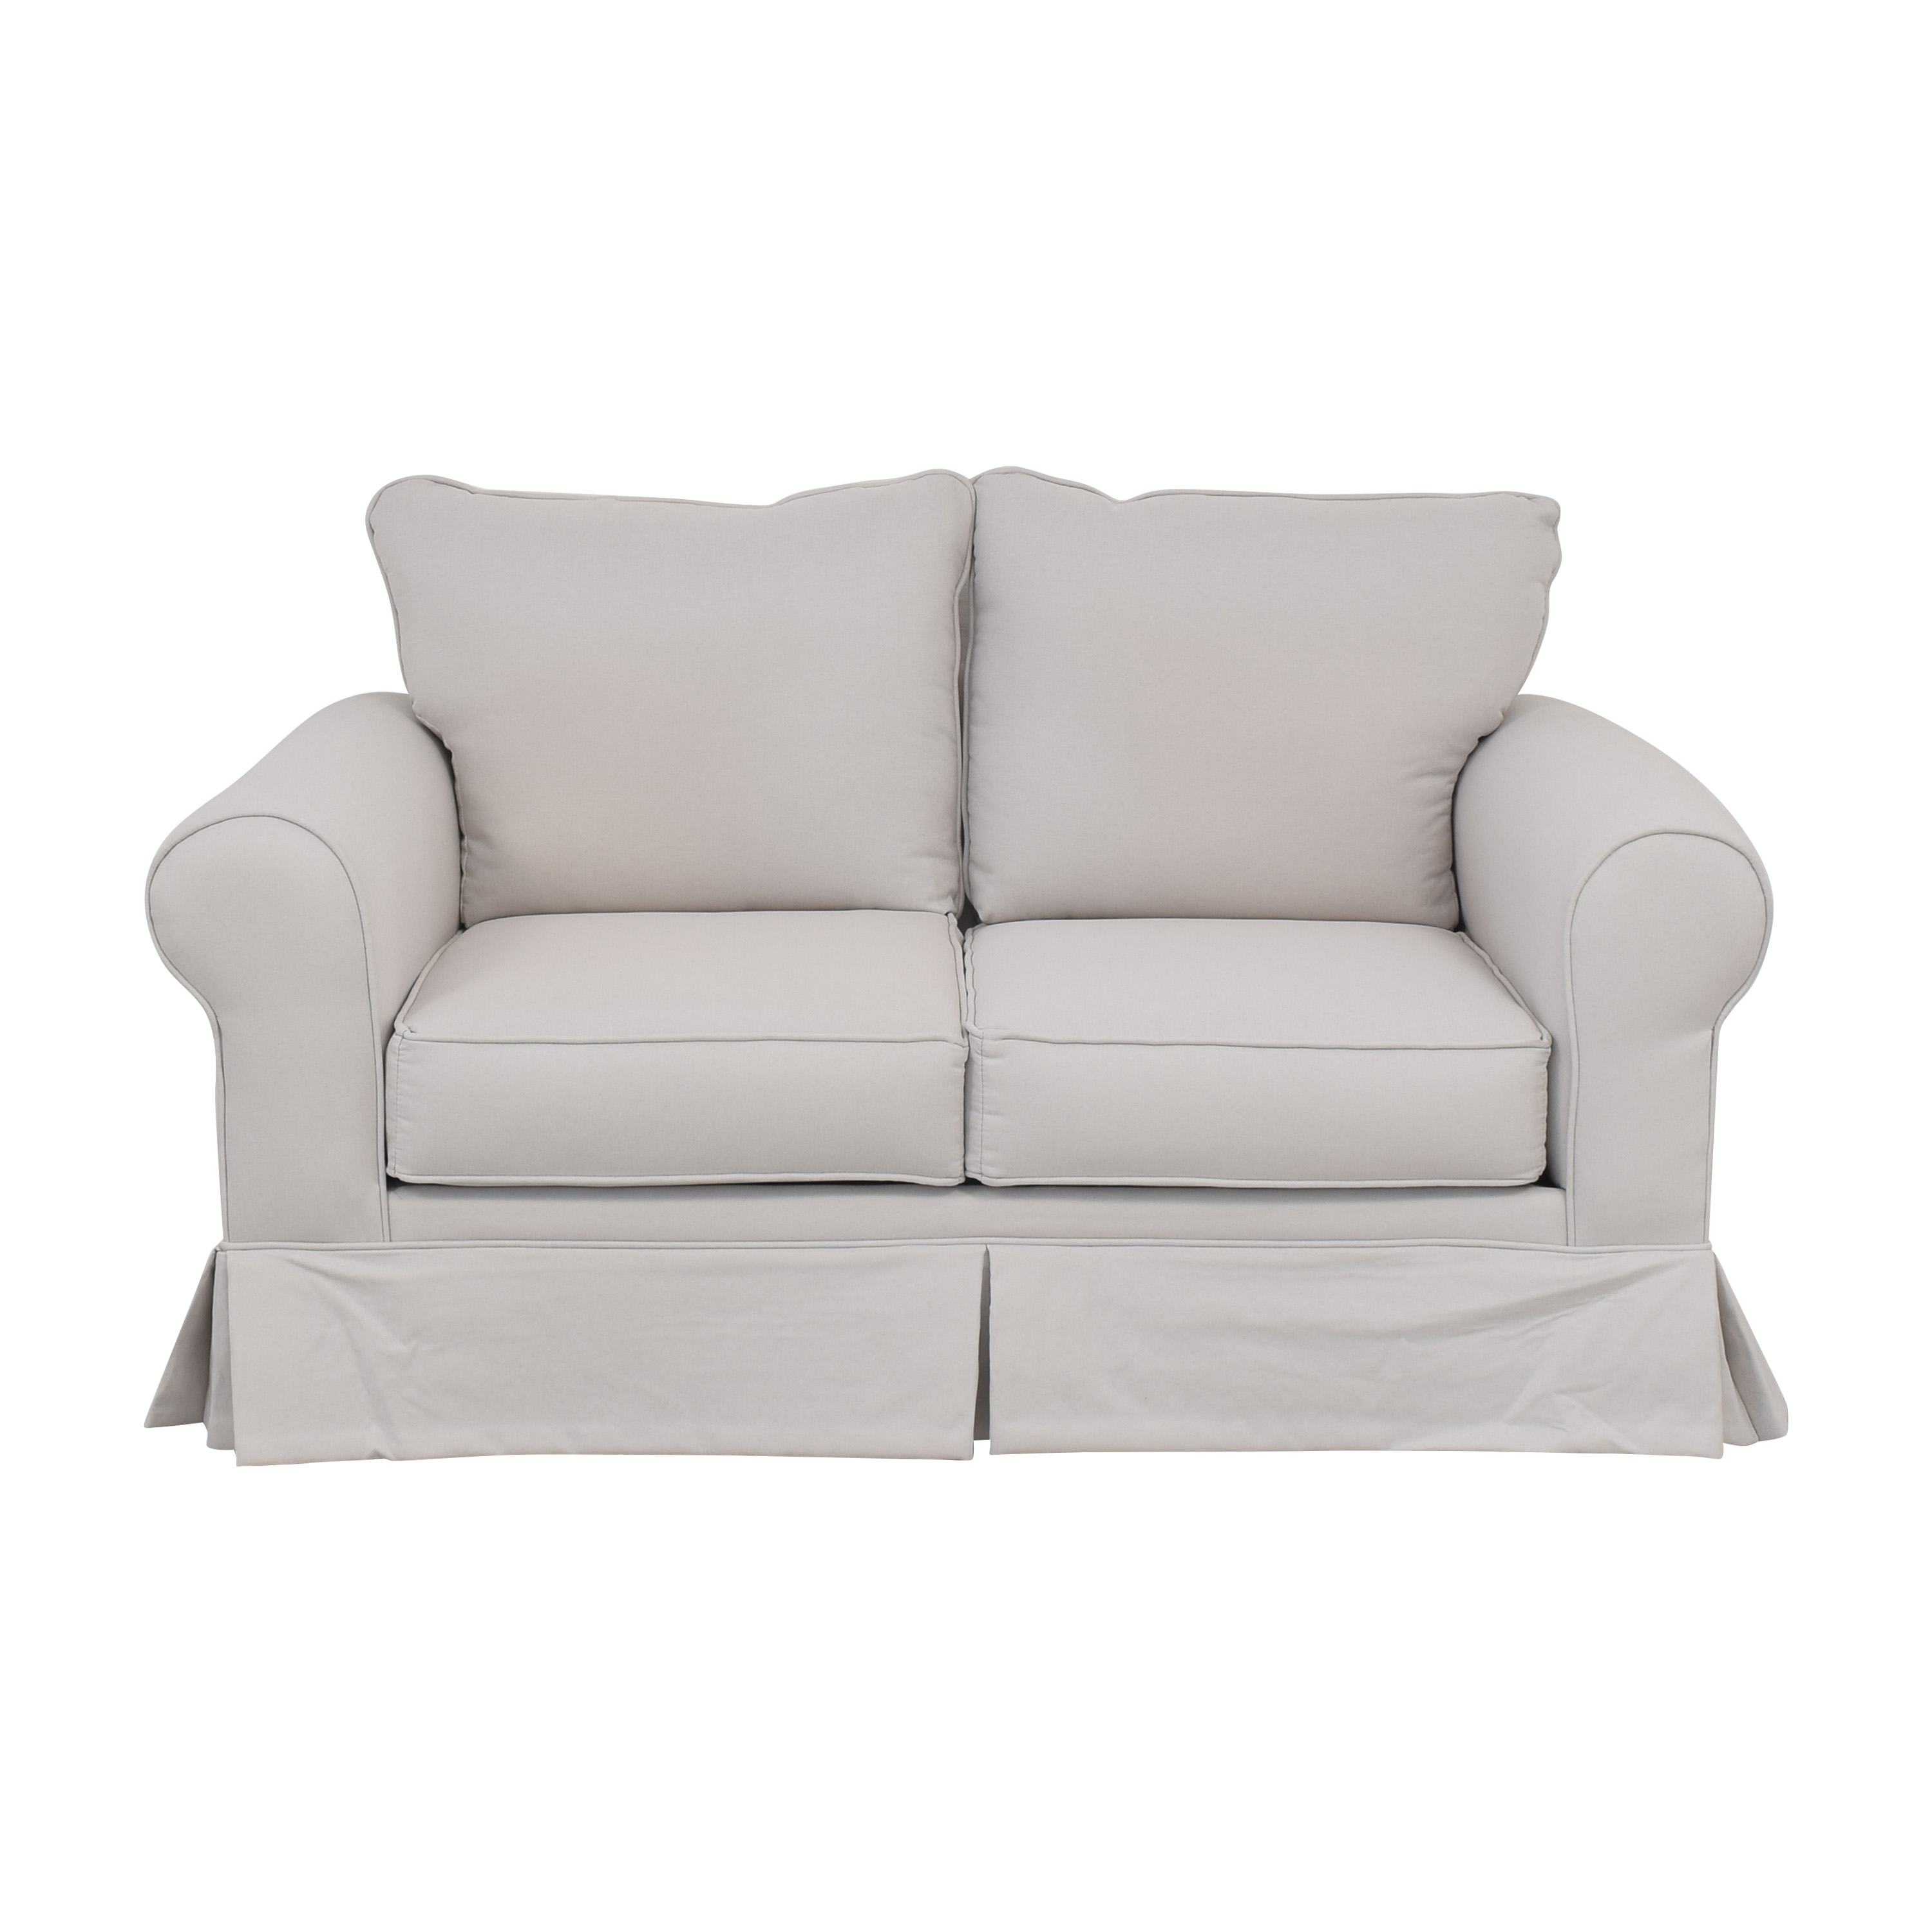 Raymour & Flanigan Raymour & Flanigan Skirted Loveseat price